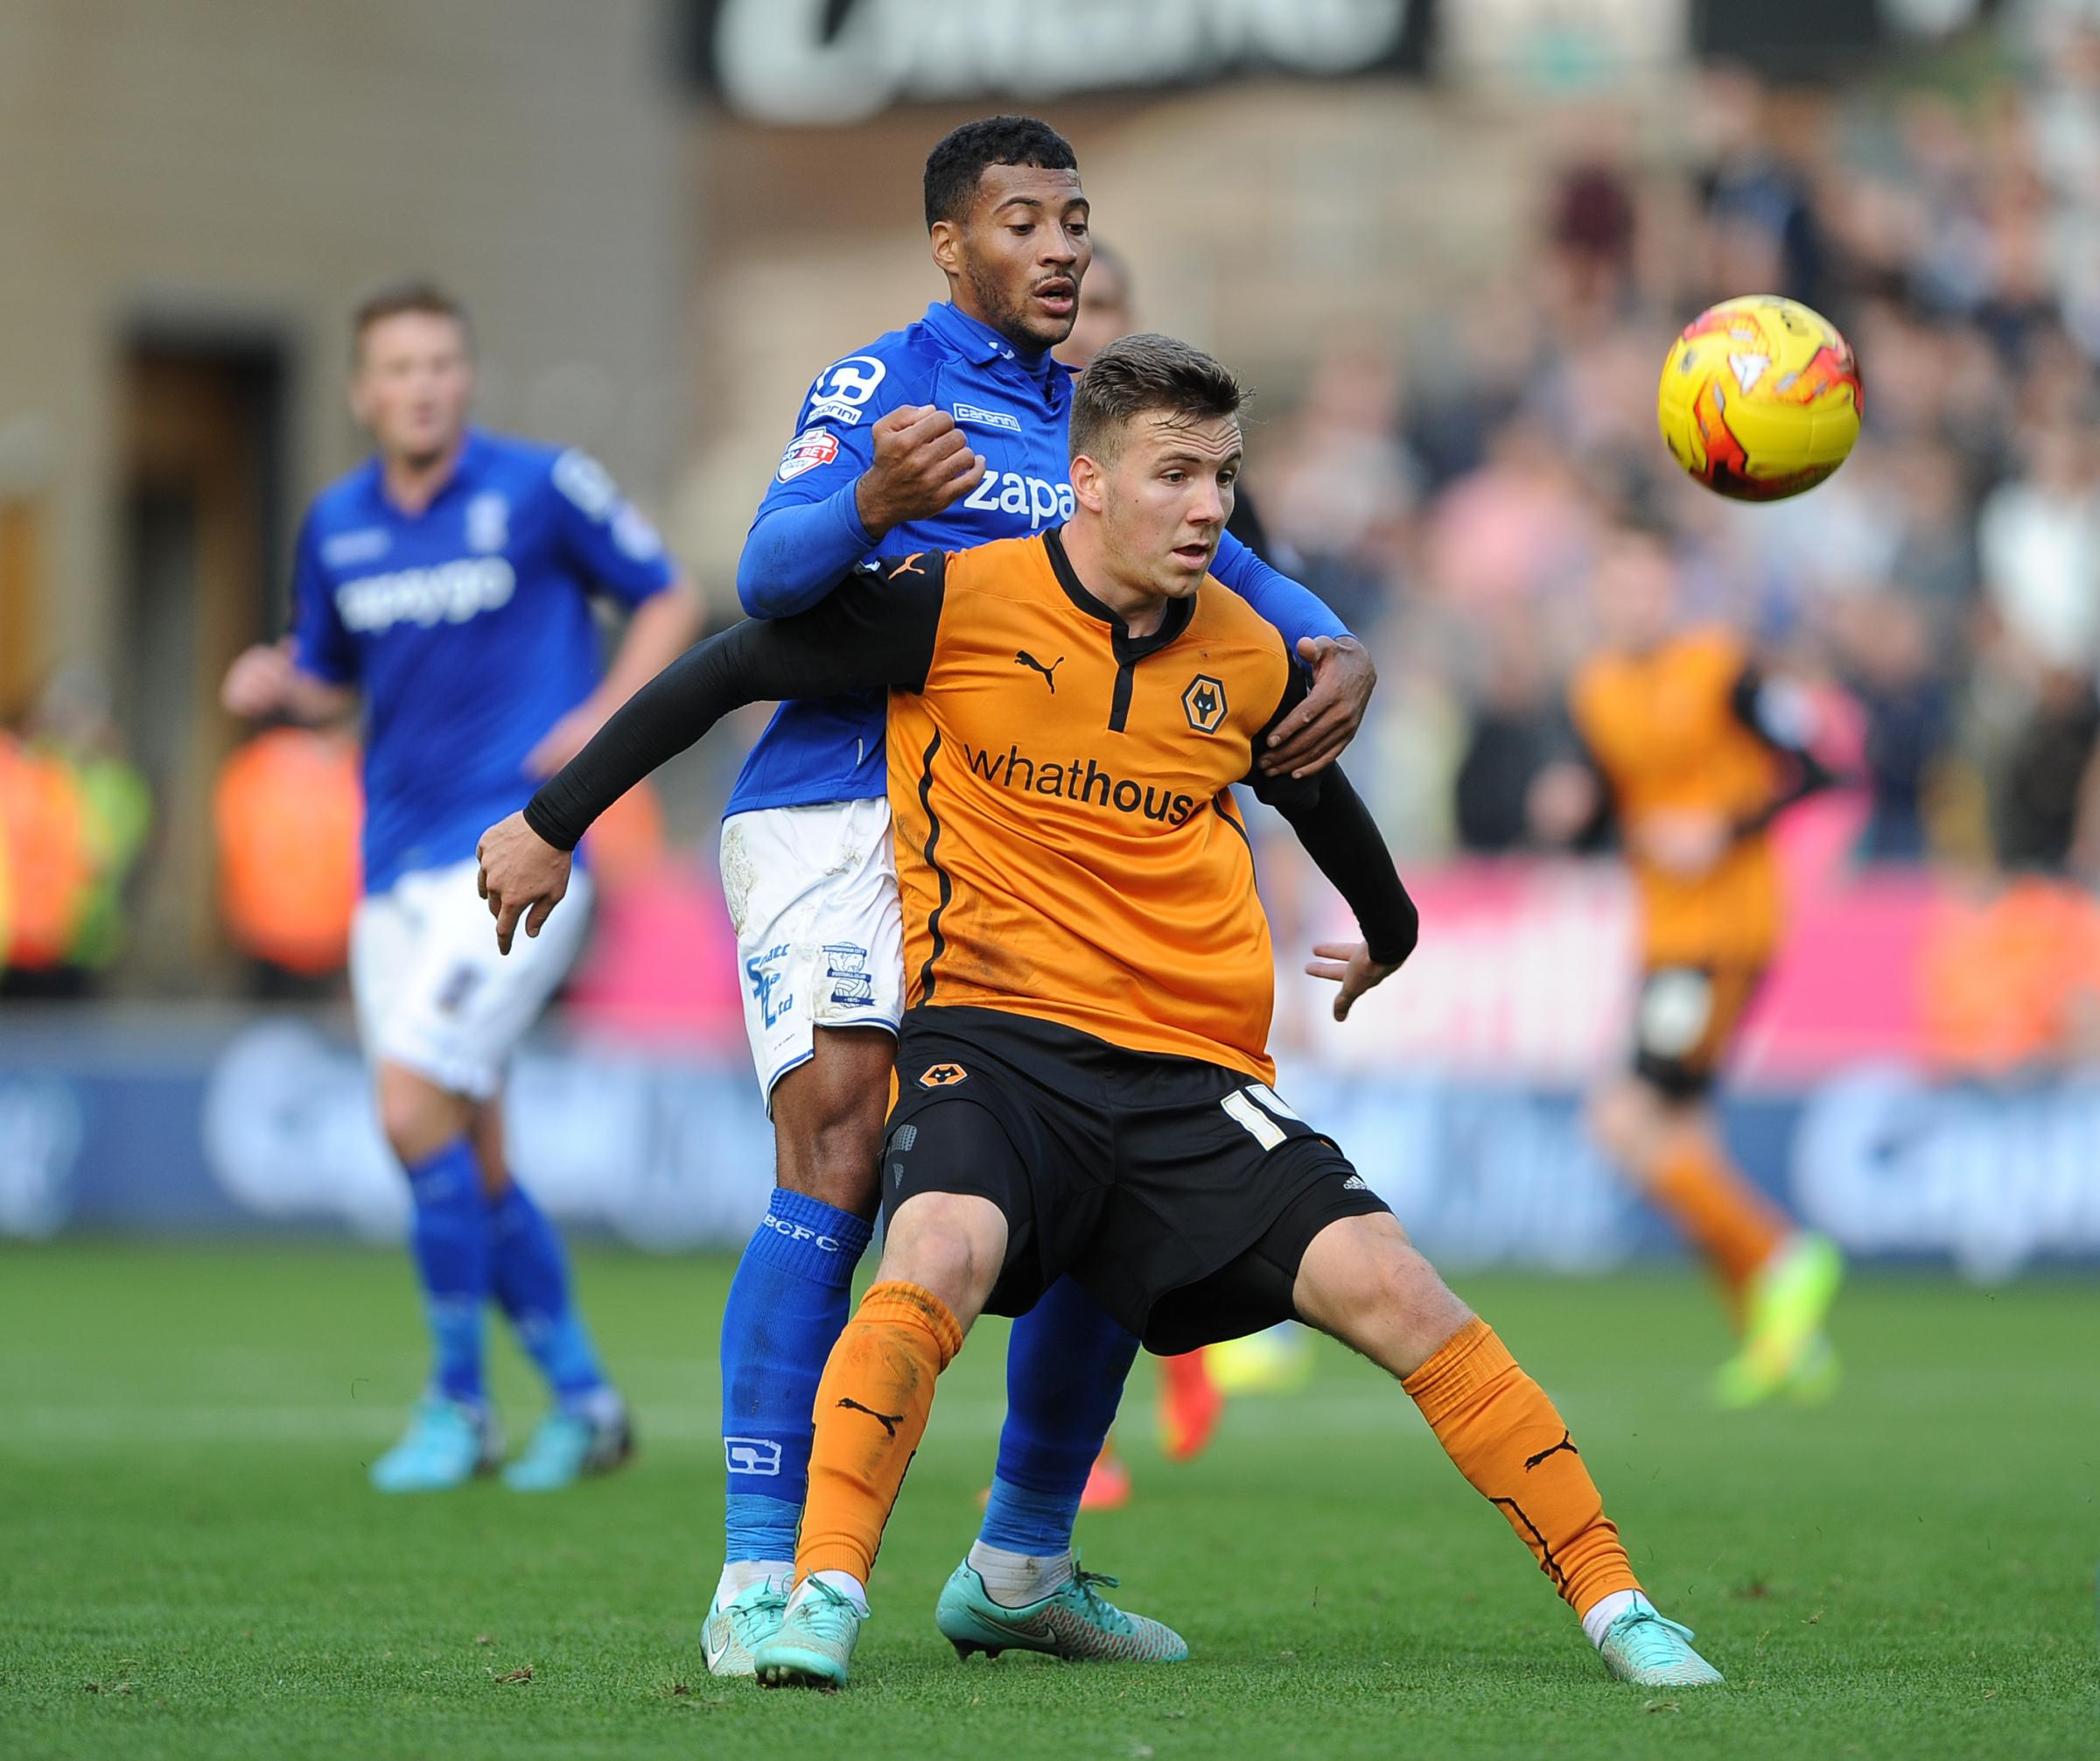 FRESH START: Lee Evans has gone to Wigan on loan after being frozen out by Wolves